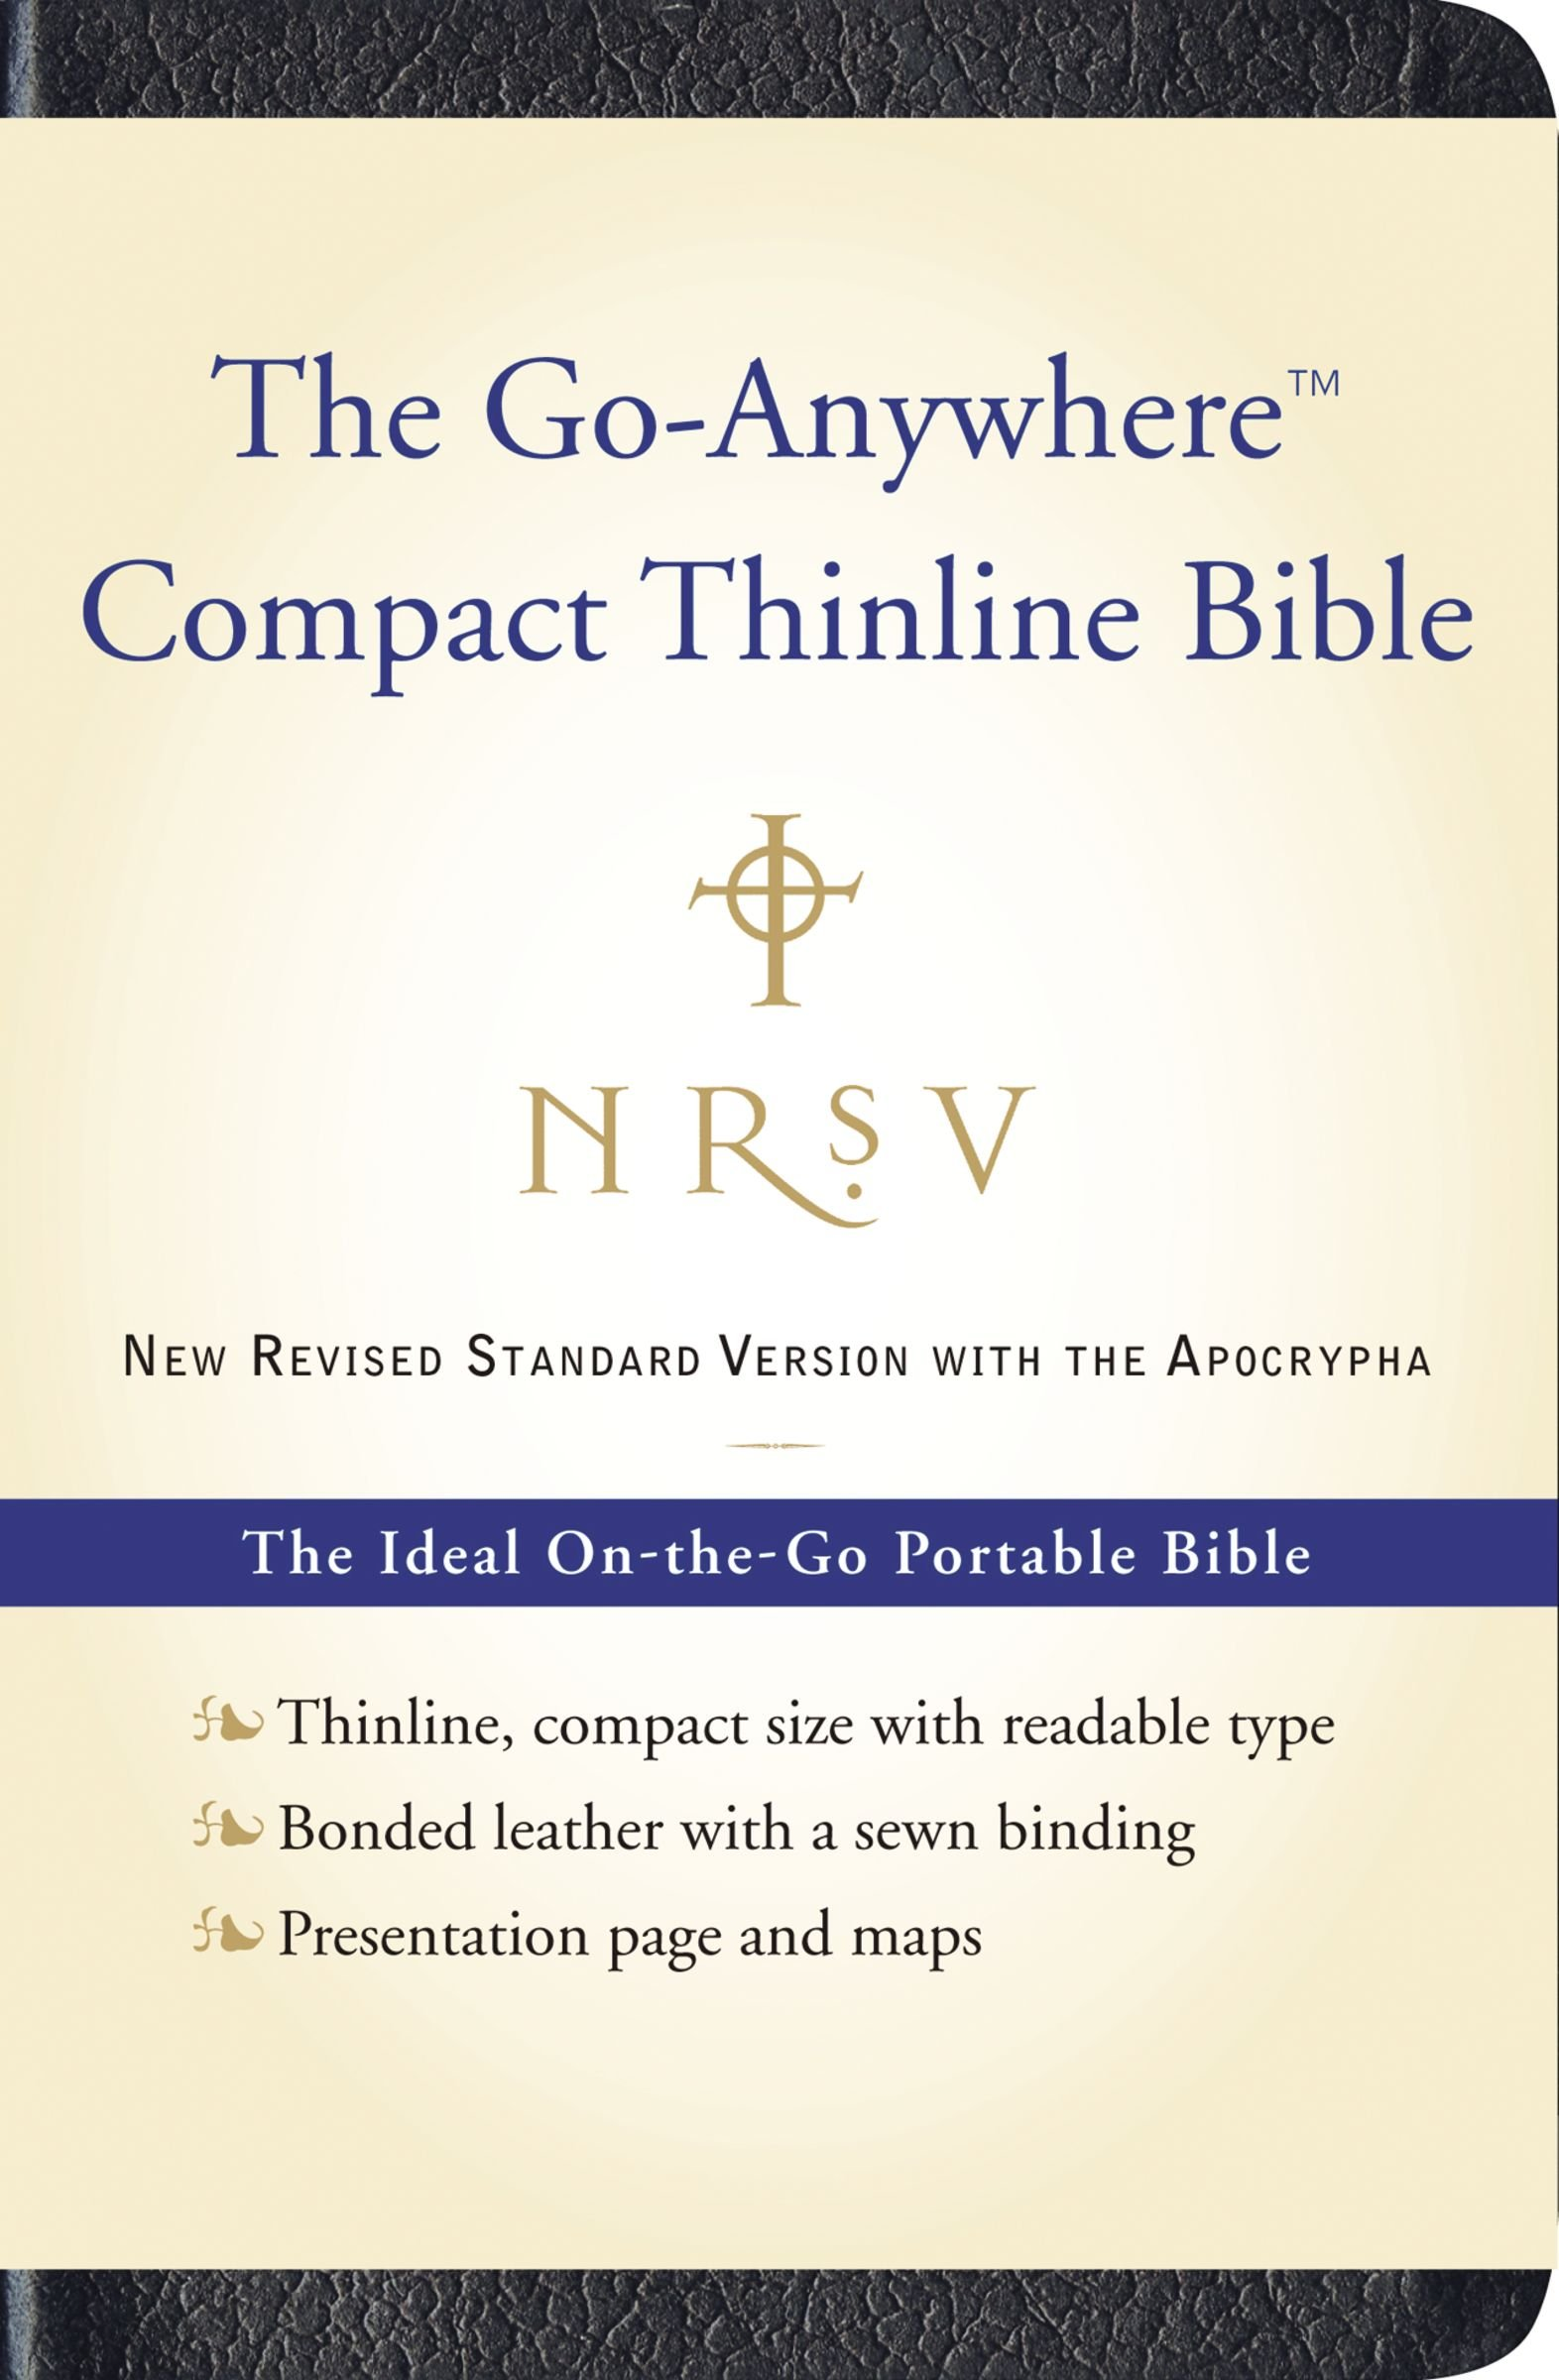 Read Online NRSV, The Go-Anywhere Compact Thinline Bible with the Apocrypha, Bonded Leather, Navy: The Ideal On-the-Go Portable Bible PDF